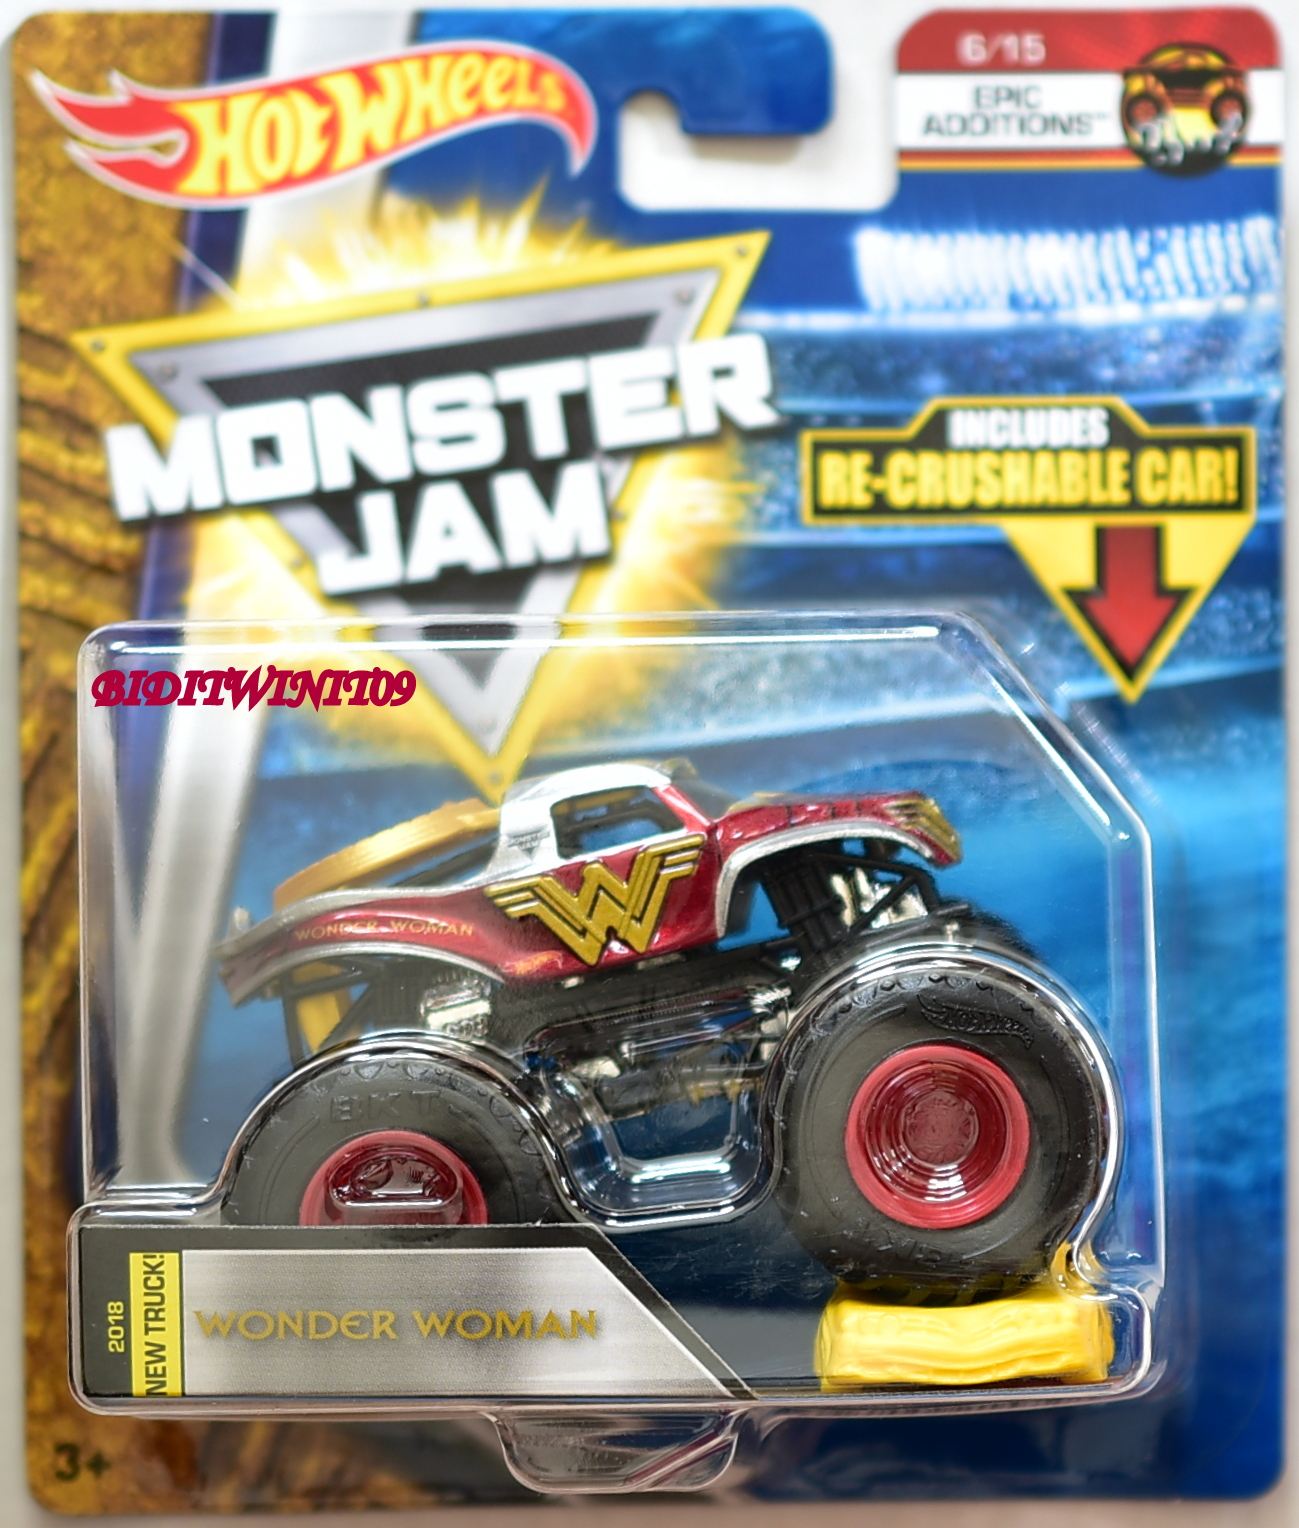 HOT WHEELS 2018 MONSTER JAM RE-CRUSHABLE CAR WONDER WOMAN EPIC EDDITIONS